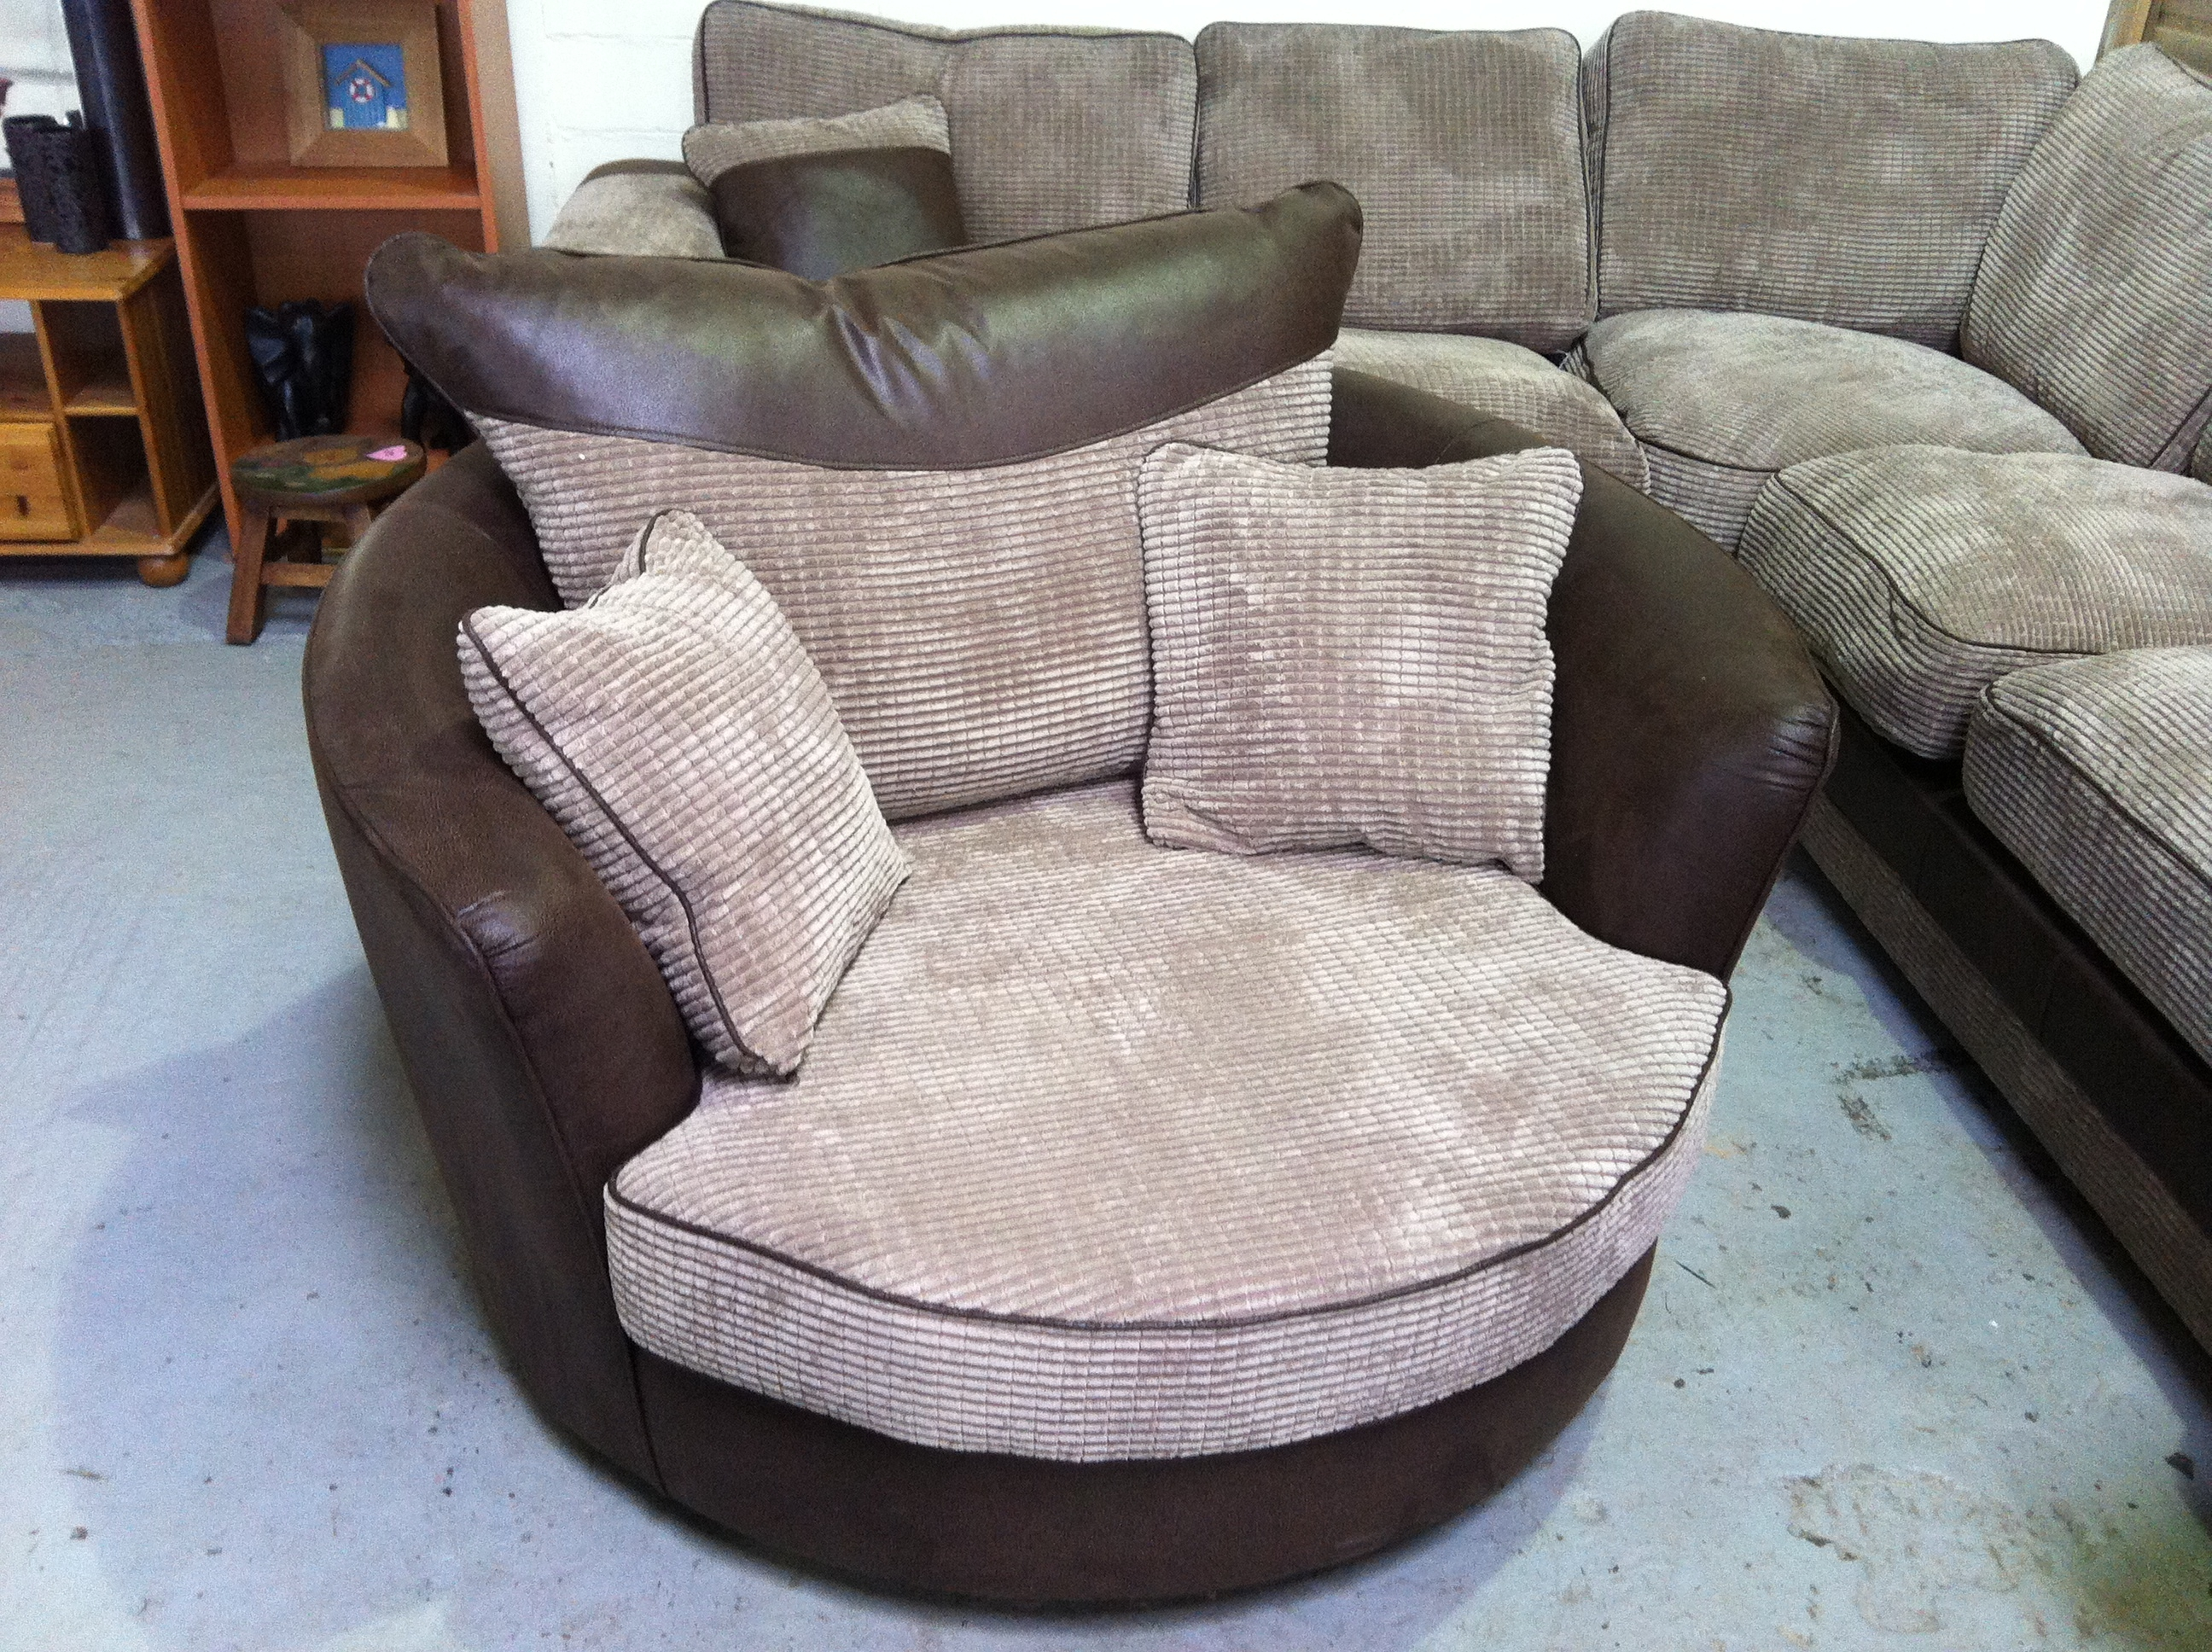 Sofas Center Swivel Sofa Chair And Setround Chairsofa Set Round Inside Sofa With Swivel Chair (View 15 of 15)